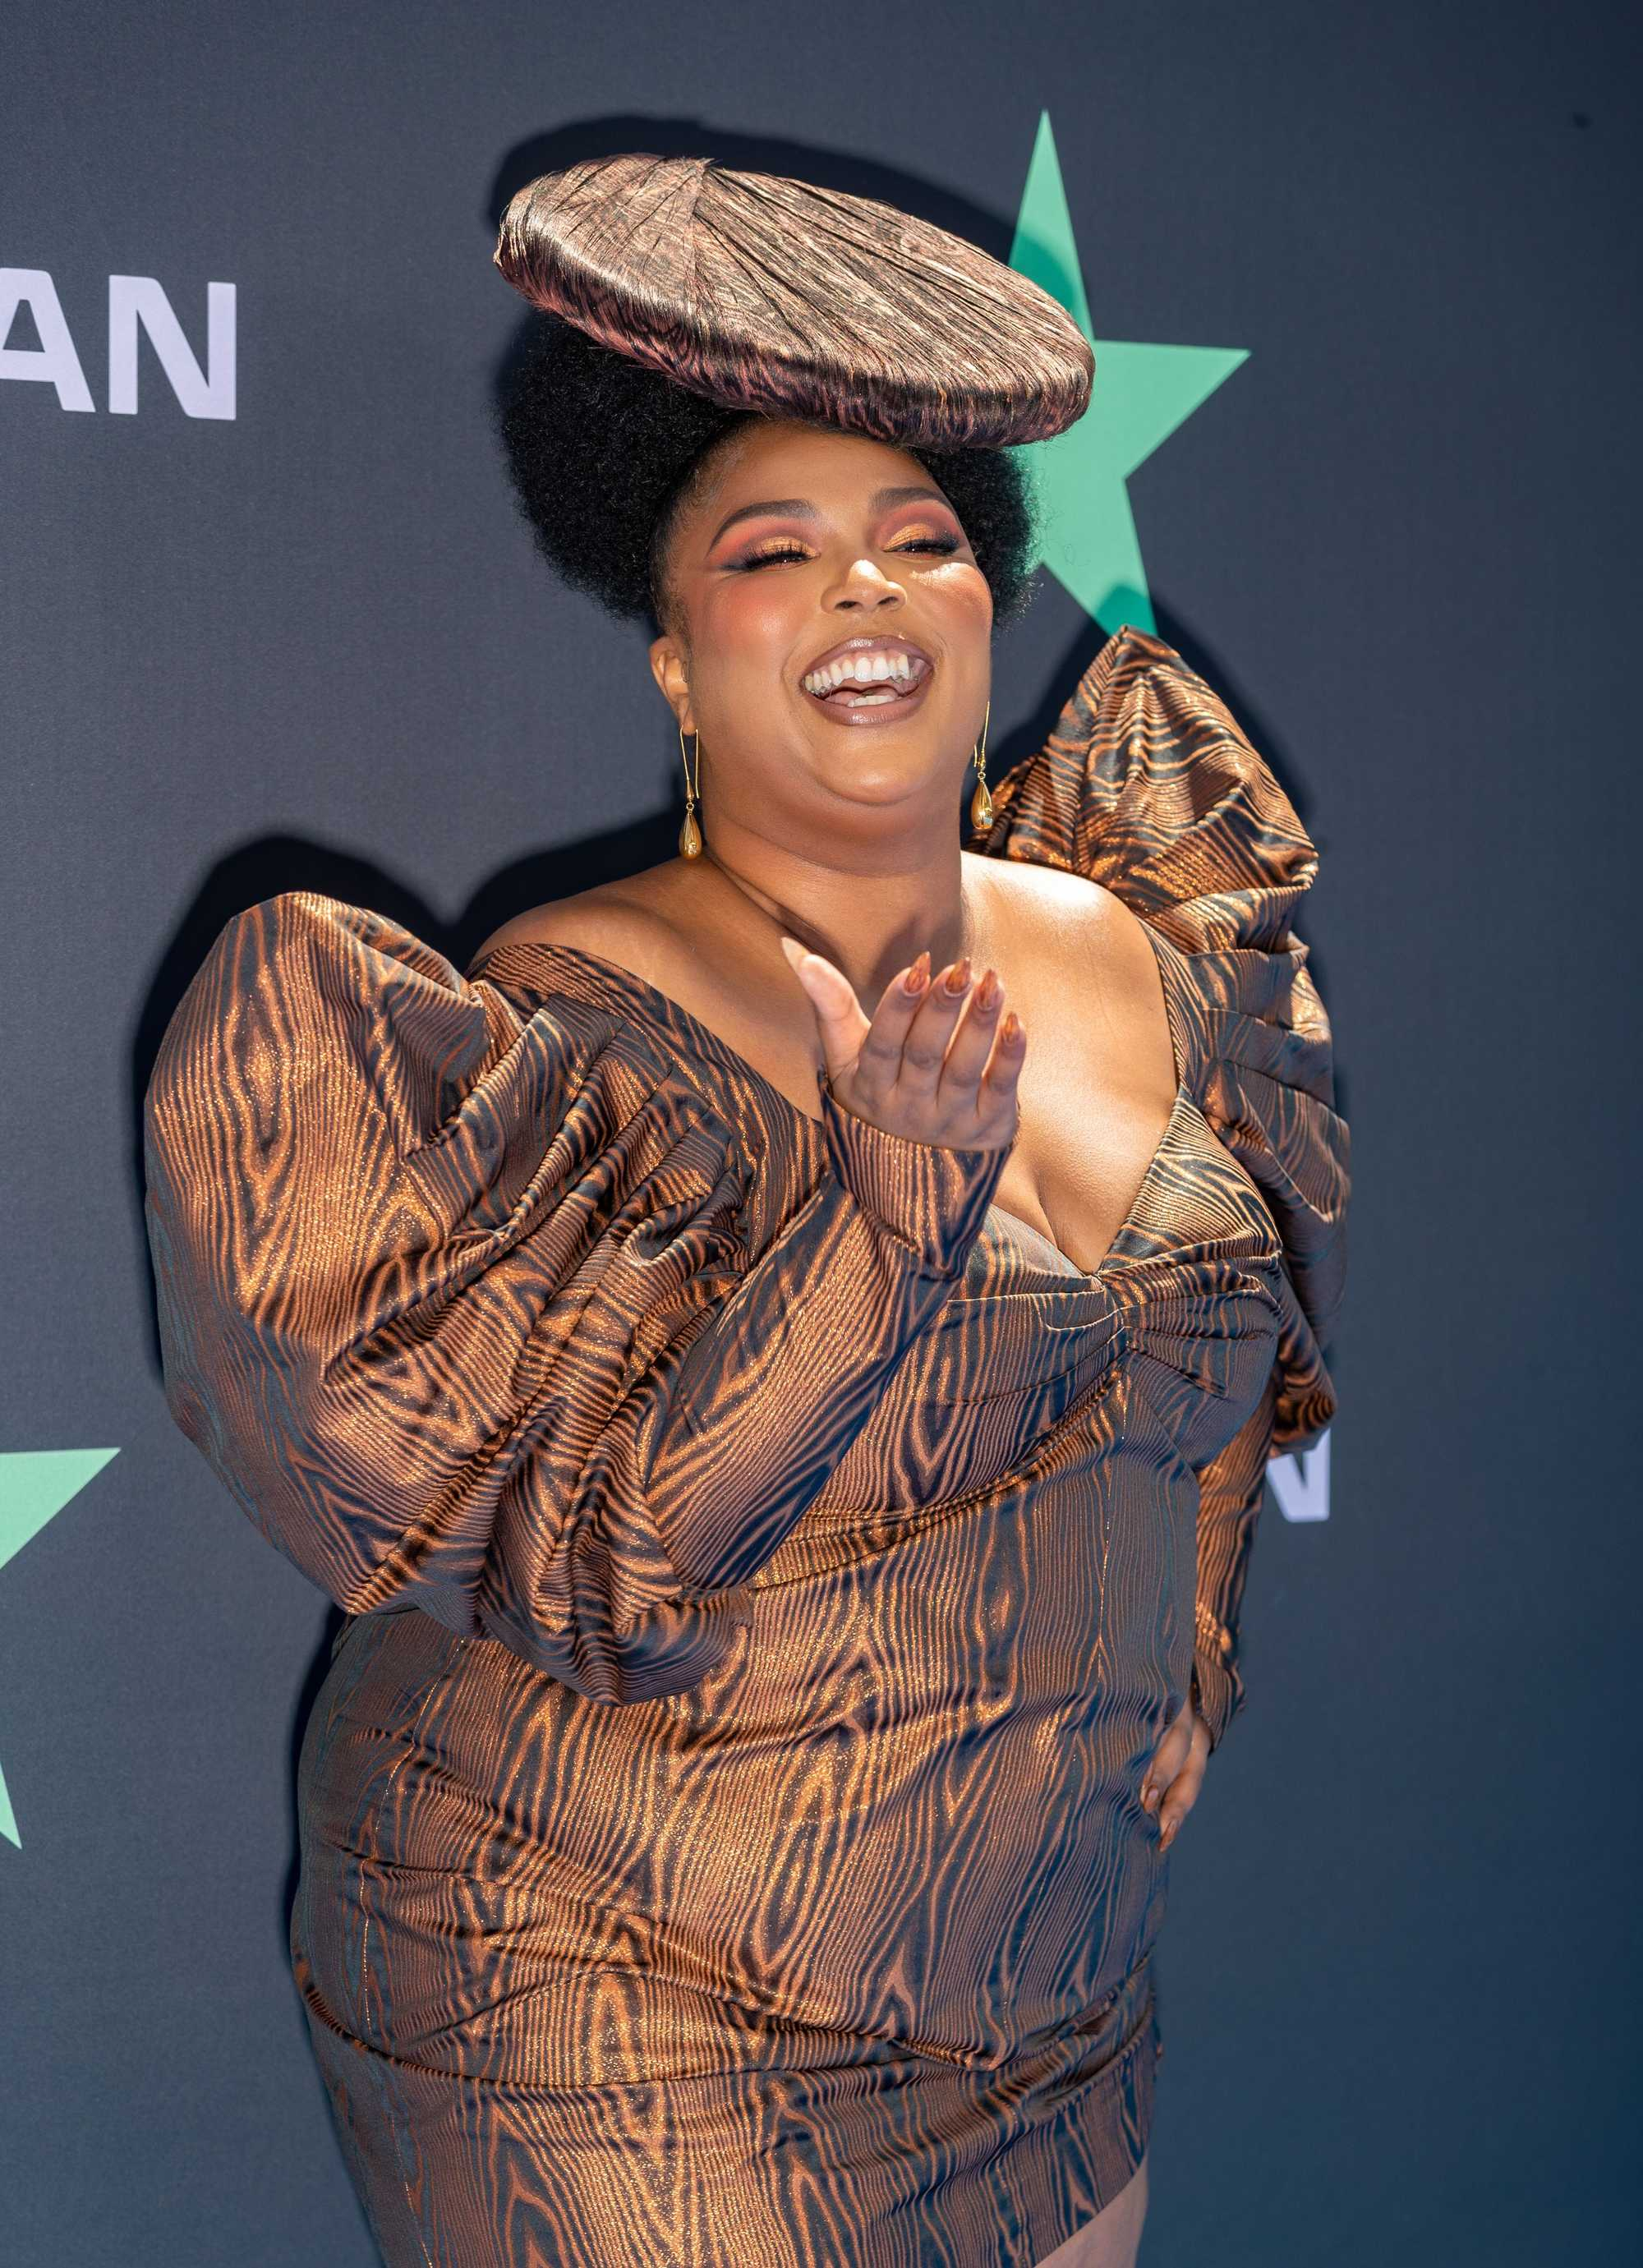 Lizzo with her natural hair in an updo with a wood effect fascinator